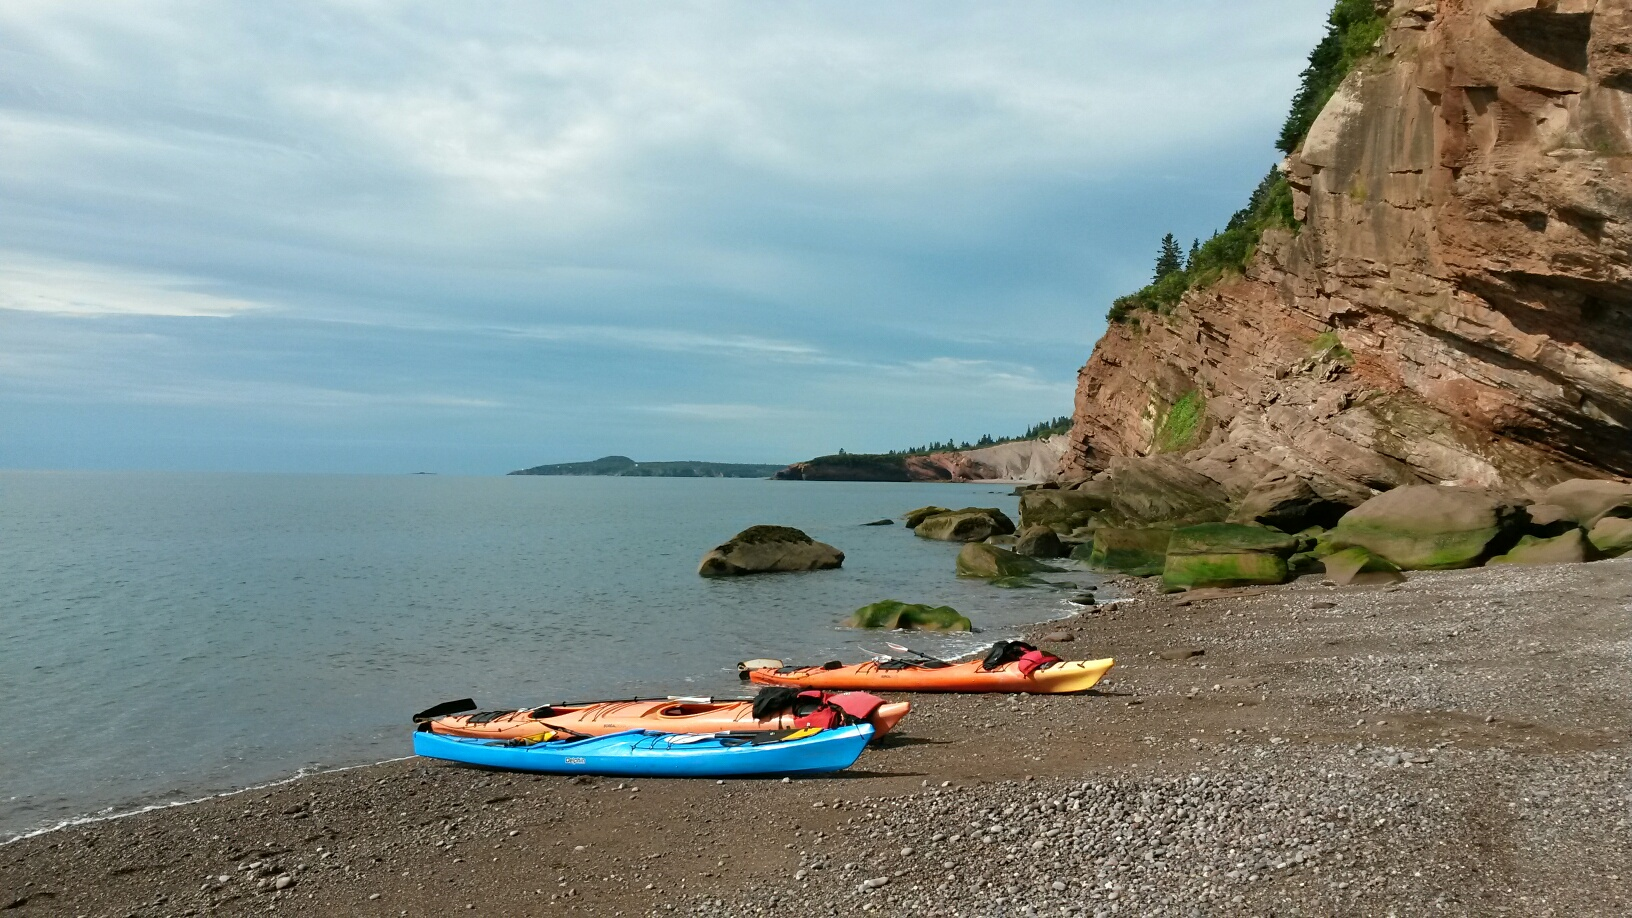 Sandstone cliffs and sea kayaks